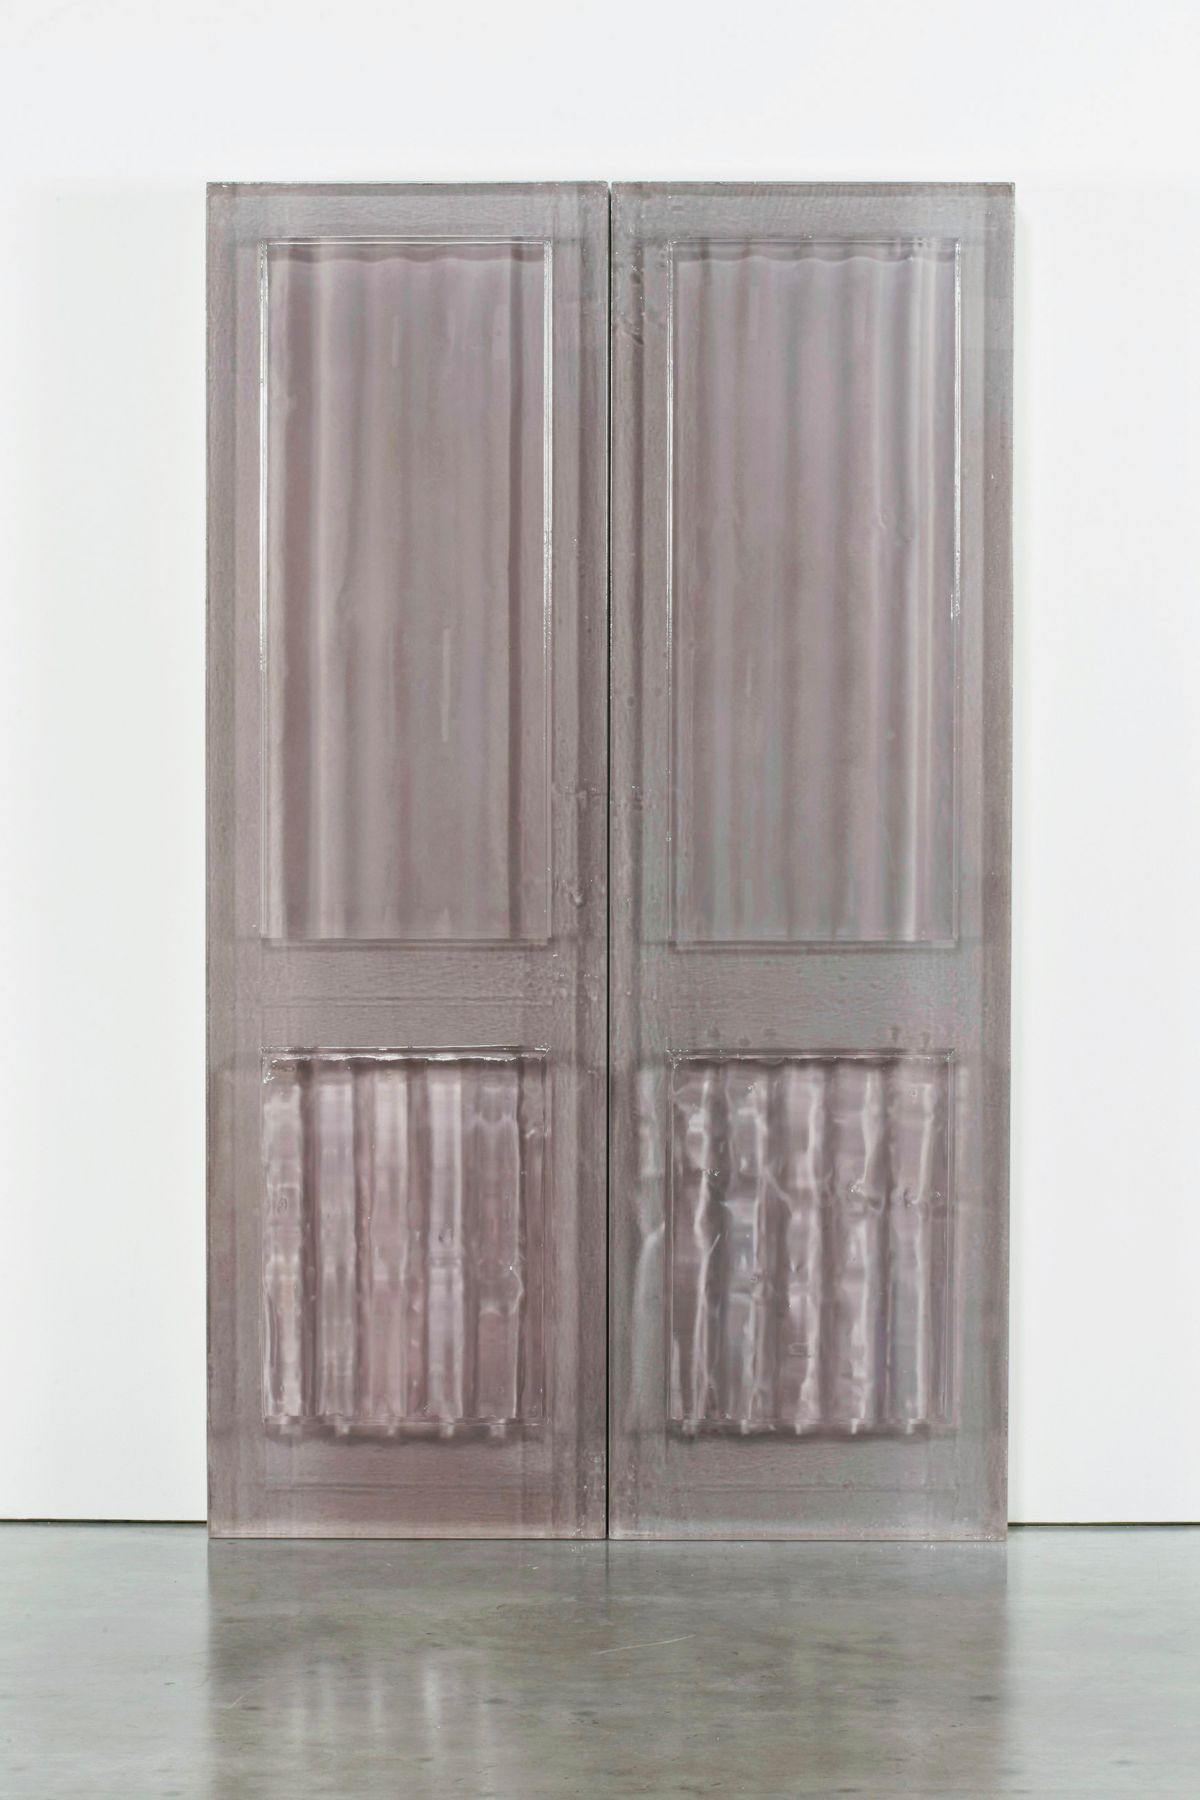 Rachel Whiteread Untitled (Curtains), 2015